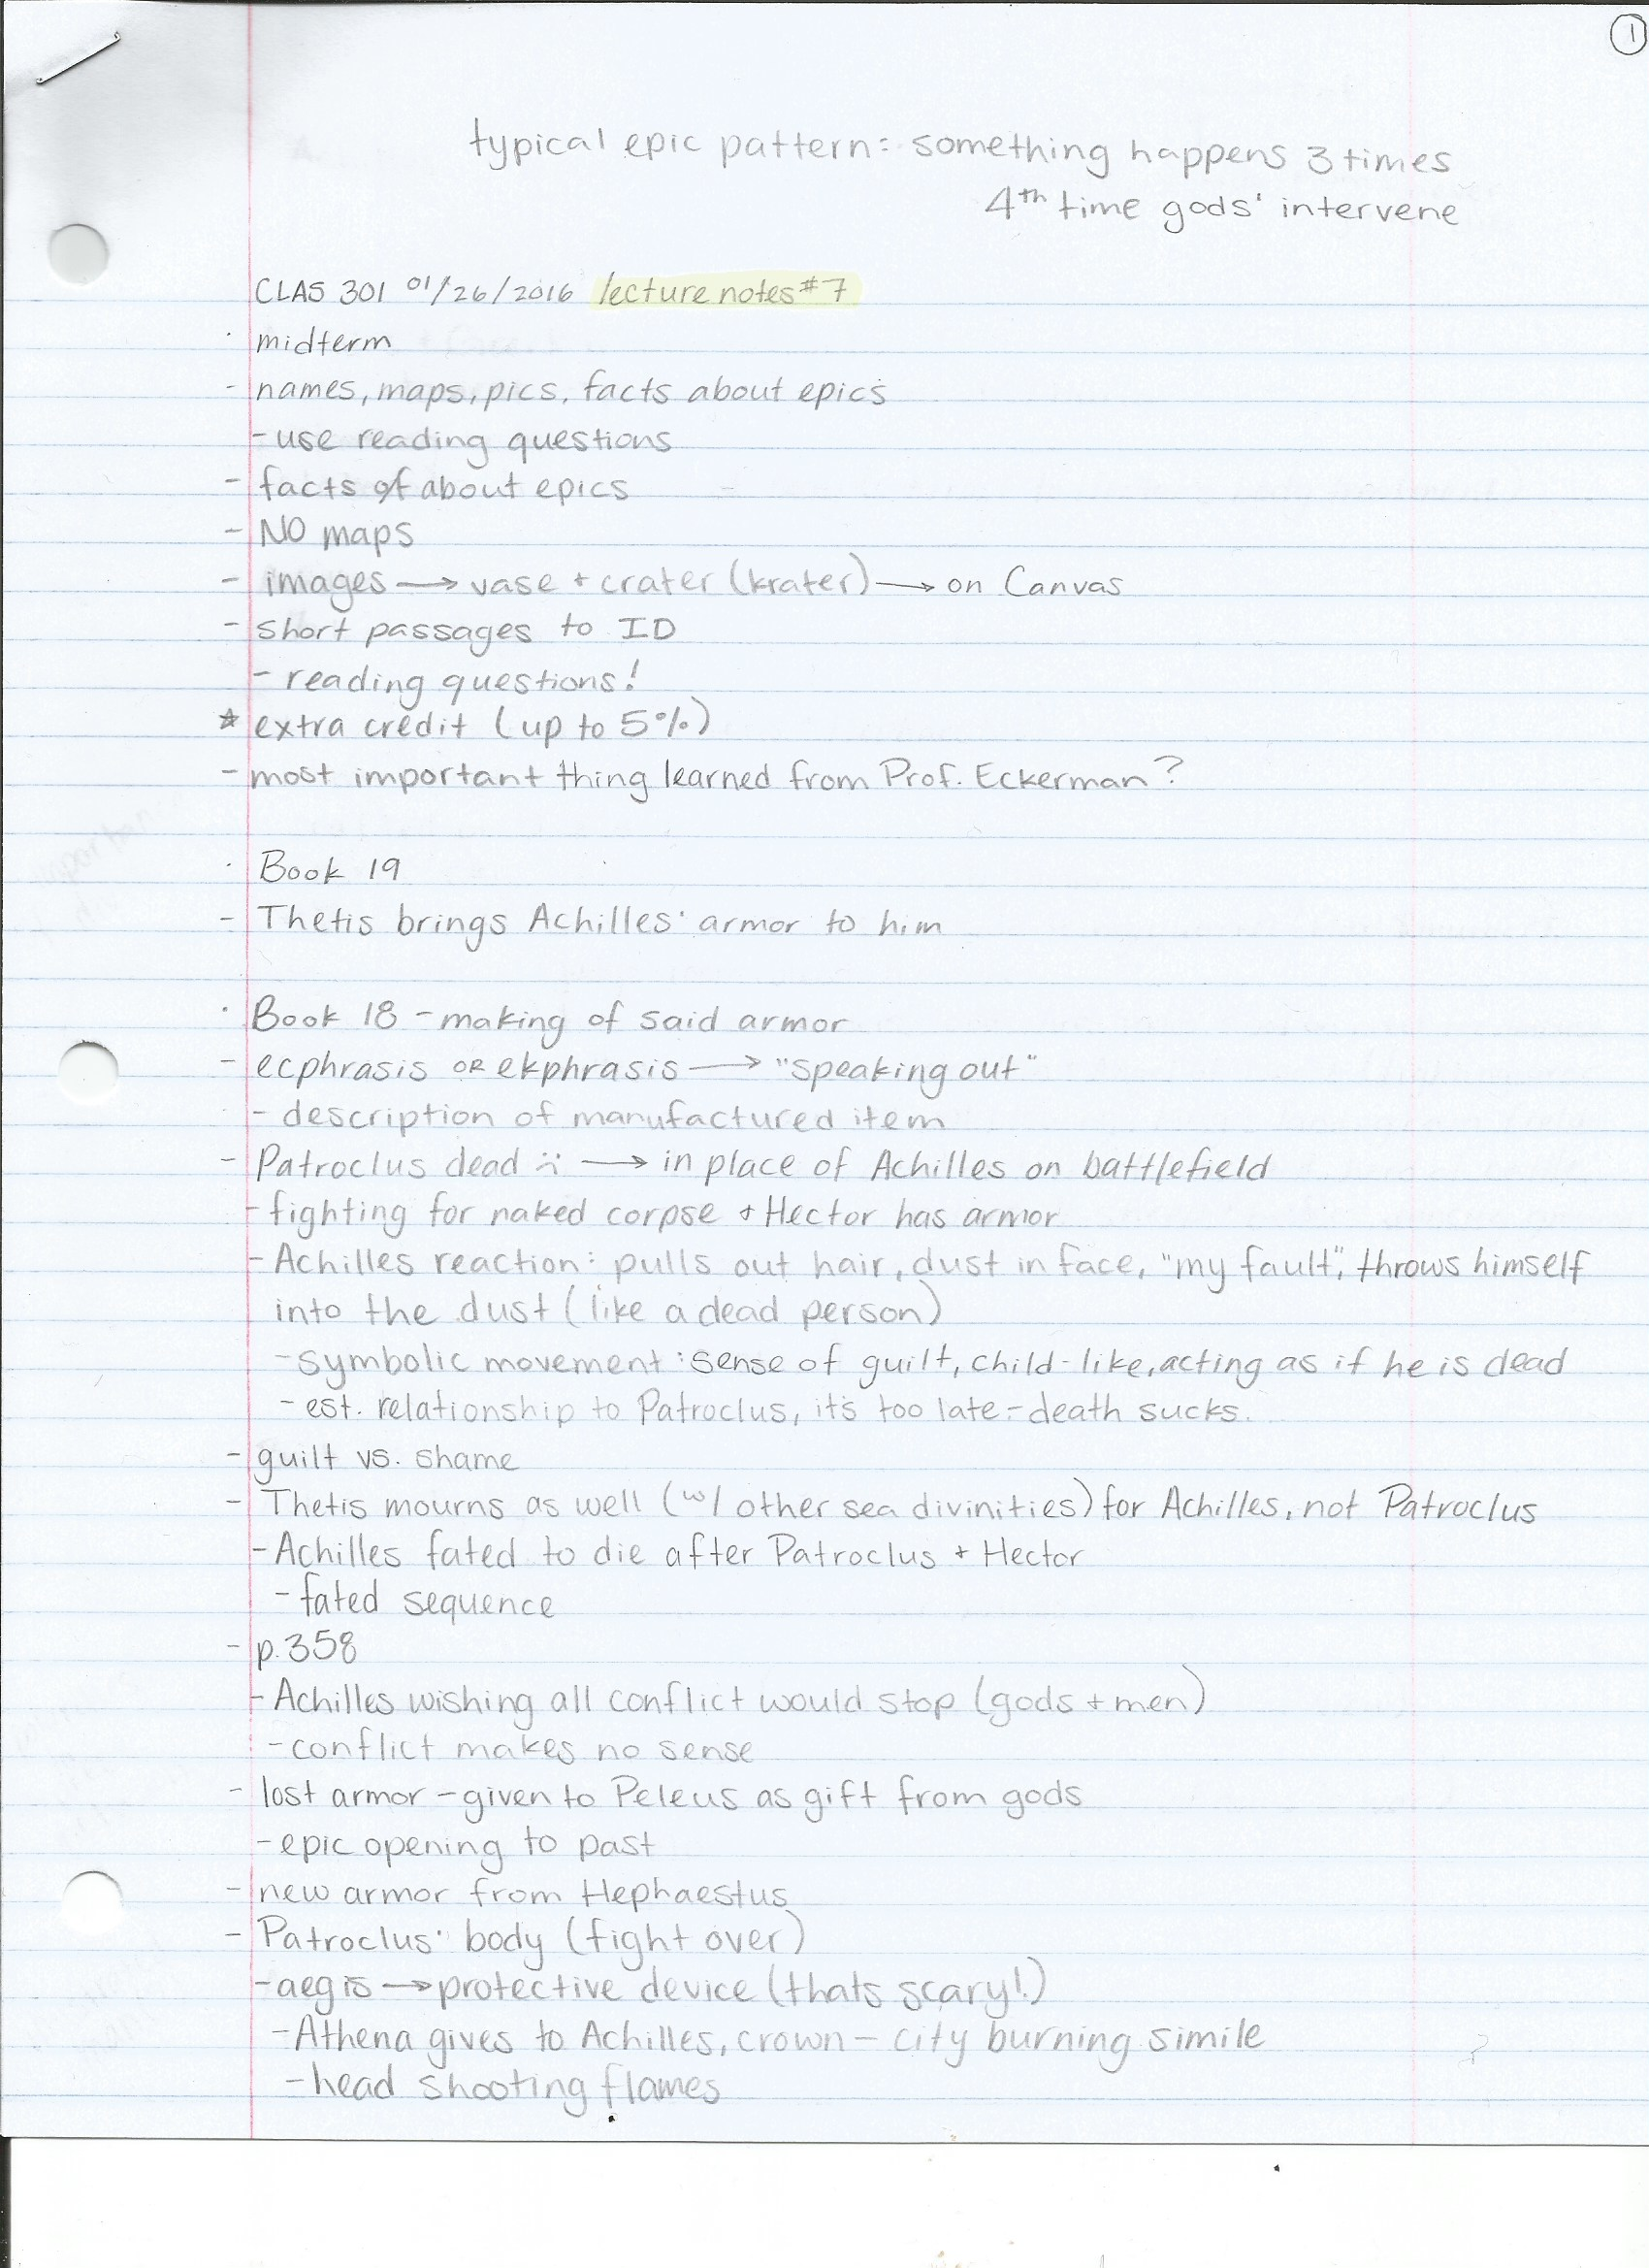 UO - CLAS 301 - Class Notes